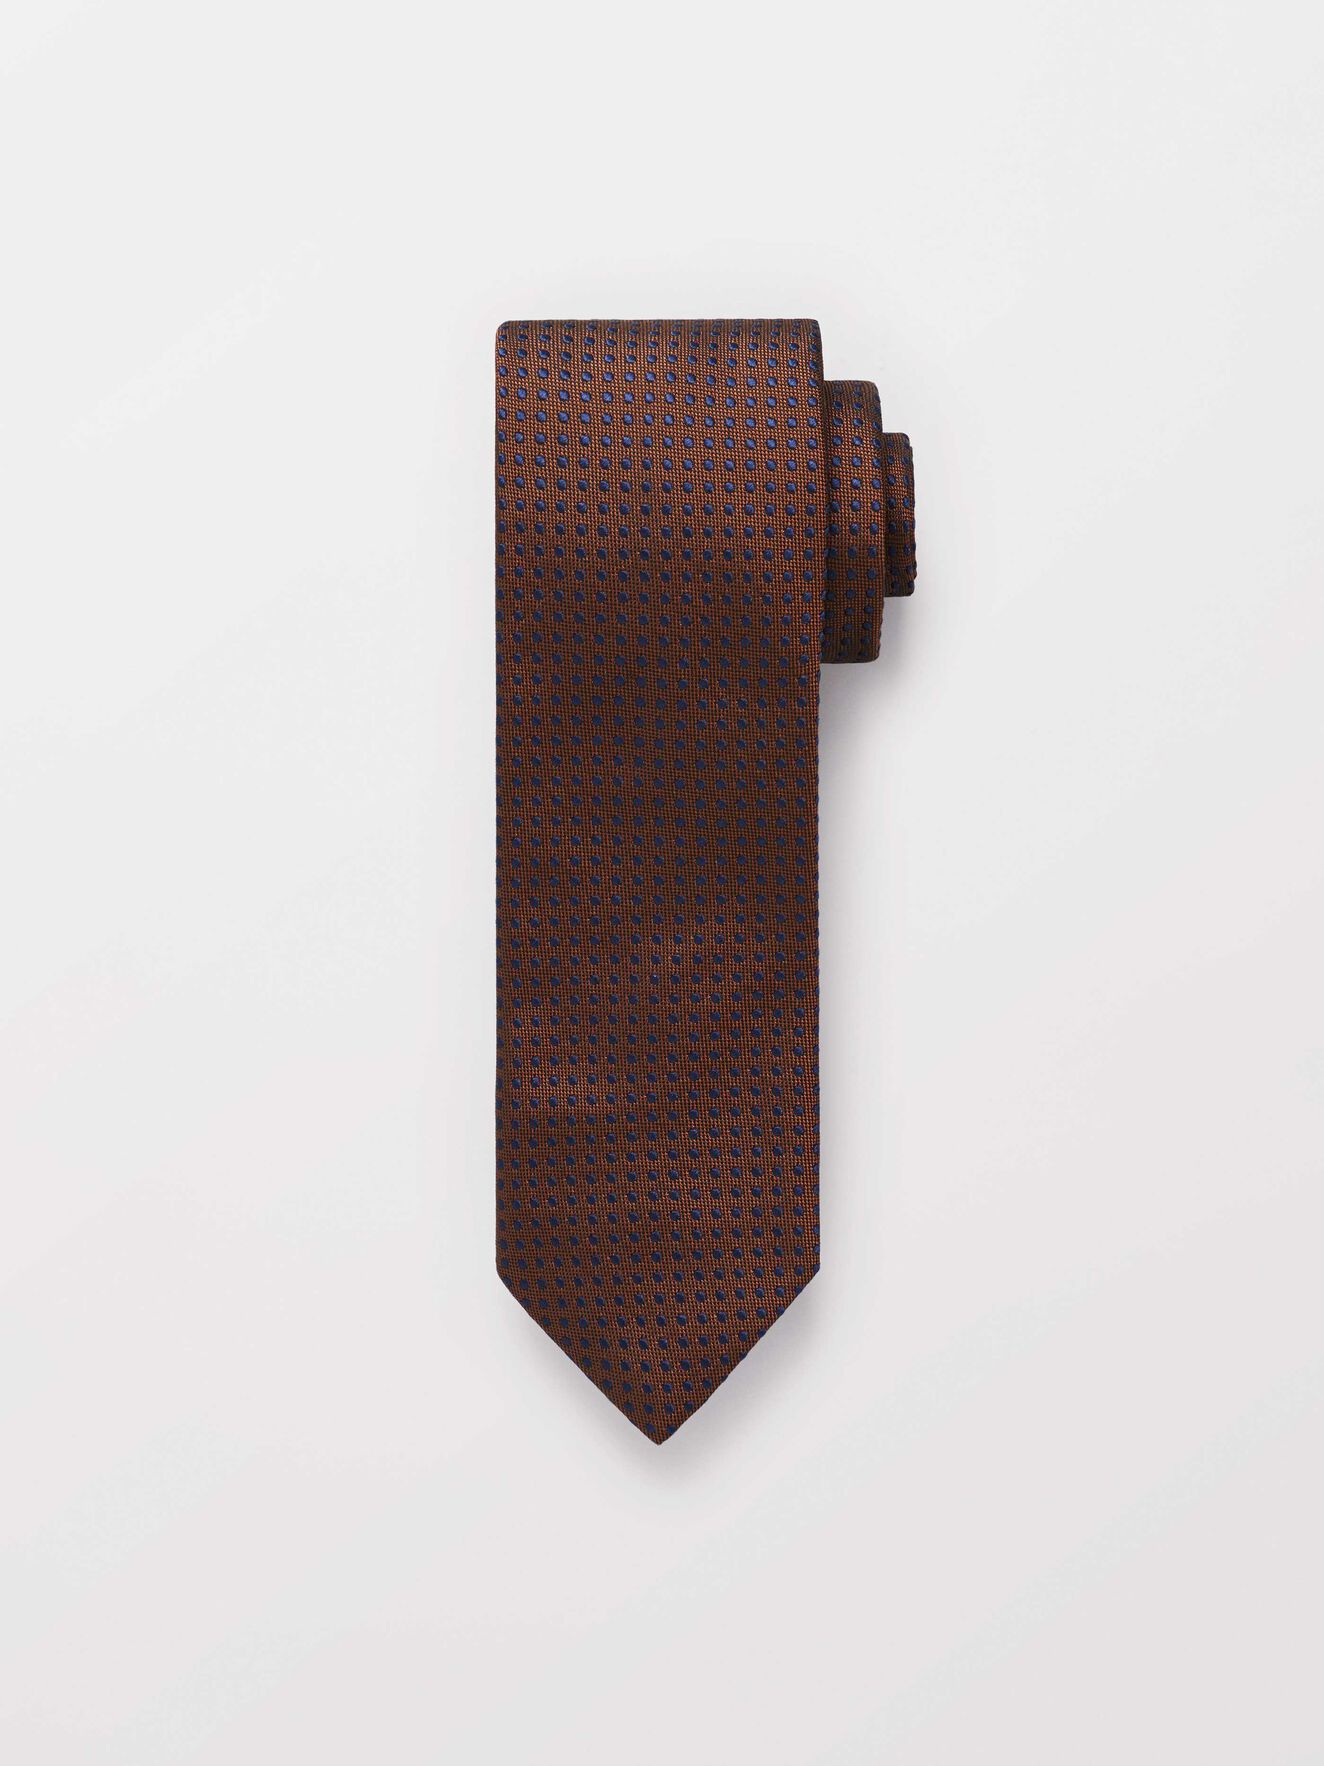 Tronne Tie in Dark Honey from Tiger of Sweden